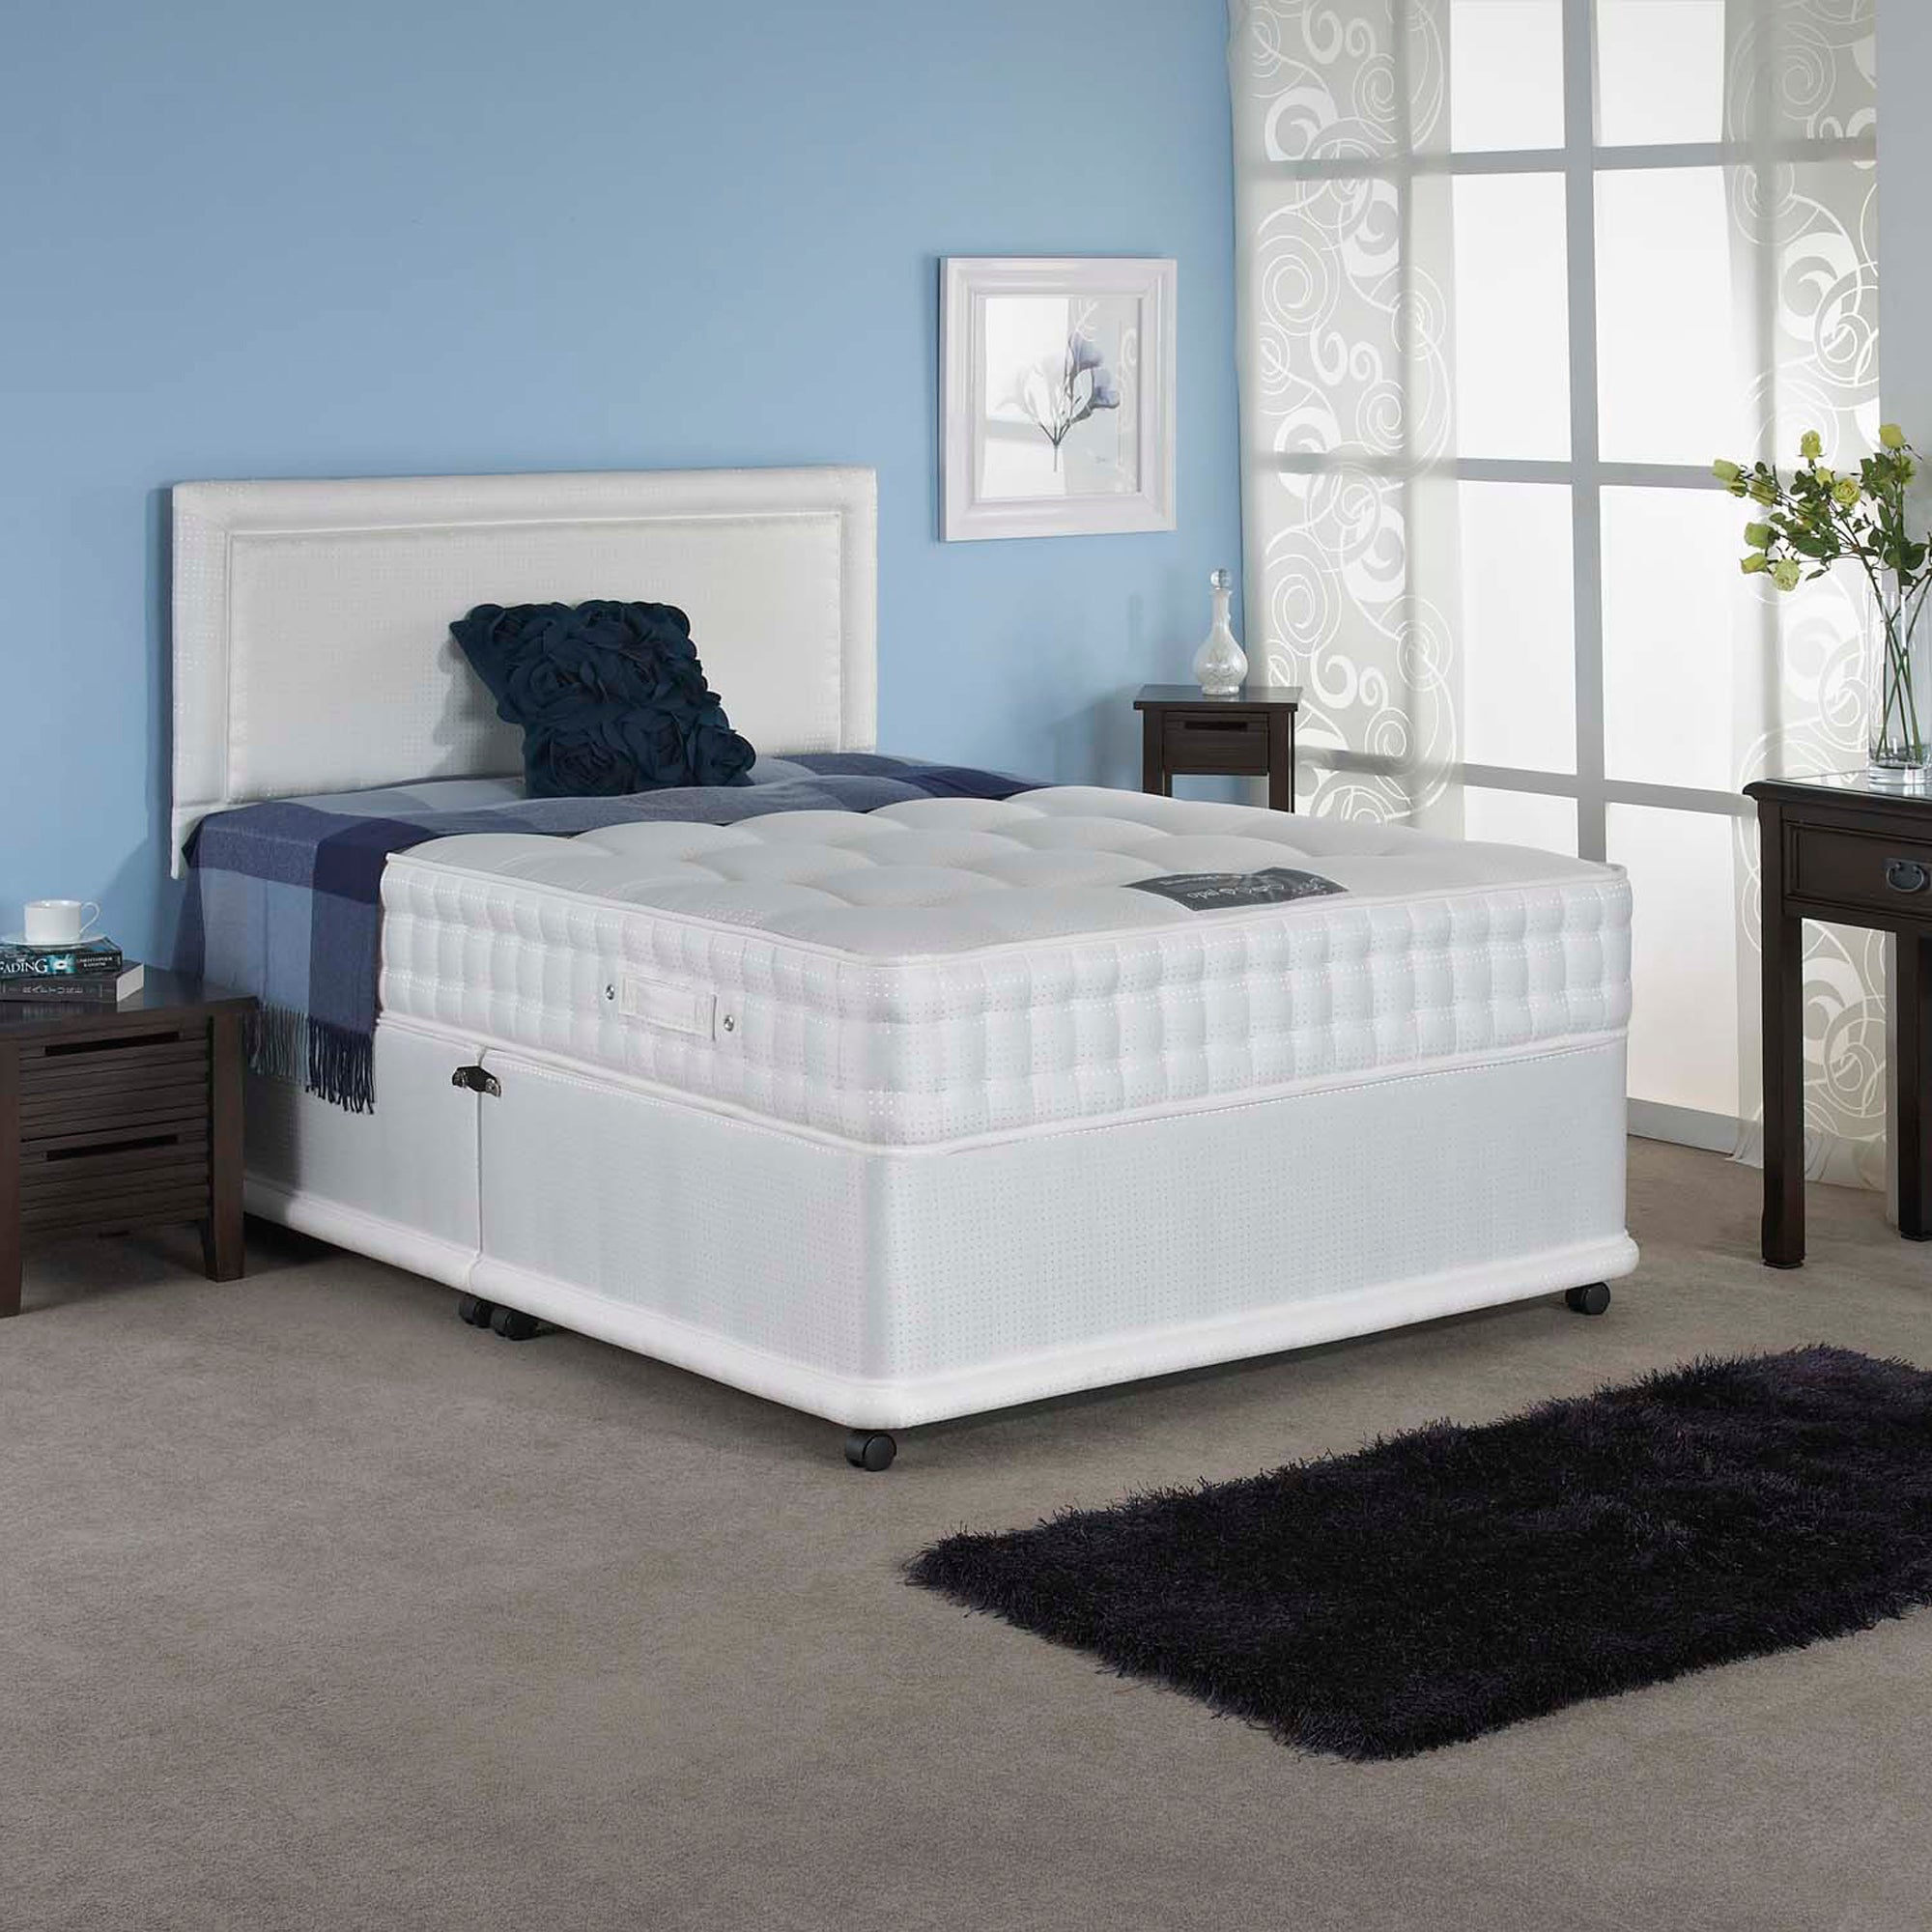 Carlisle Padded Single Divan Set with 2 Drawers Left Side